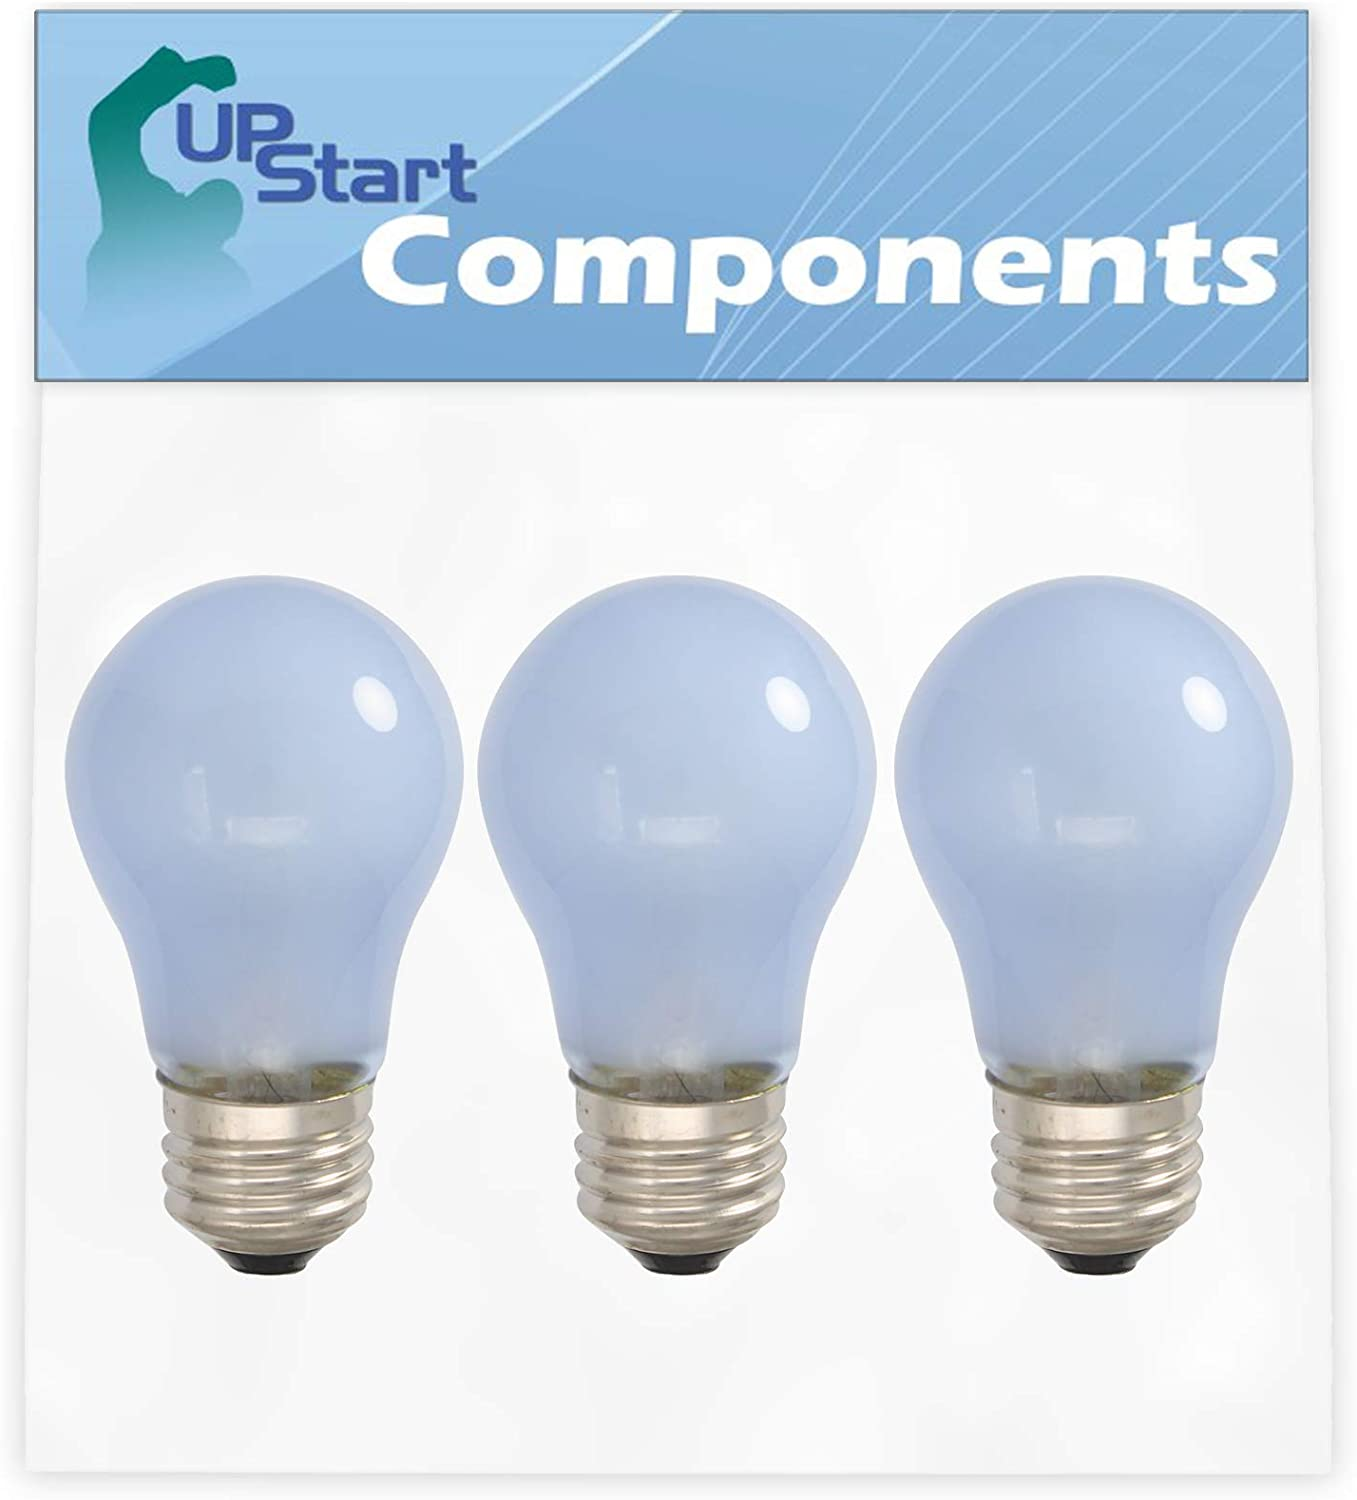 PS977006 AH977006 EA977006 1056583 3-Pack 241555401 Refrigerator Light Bulb Replacement for Frigidaire Refrigerators Compatible with Frigidaire 241555401 /& Part Number AP3763141